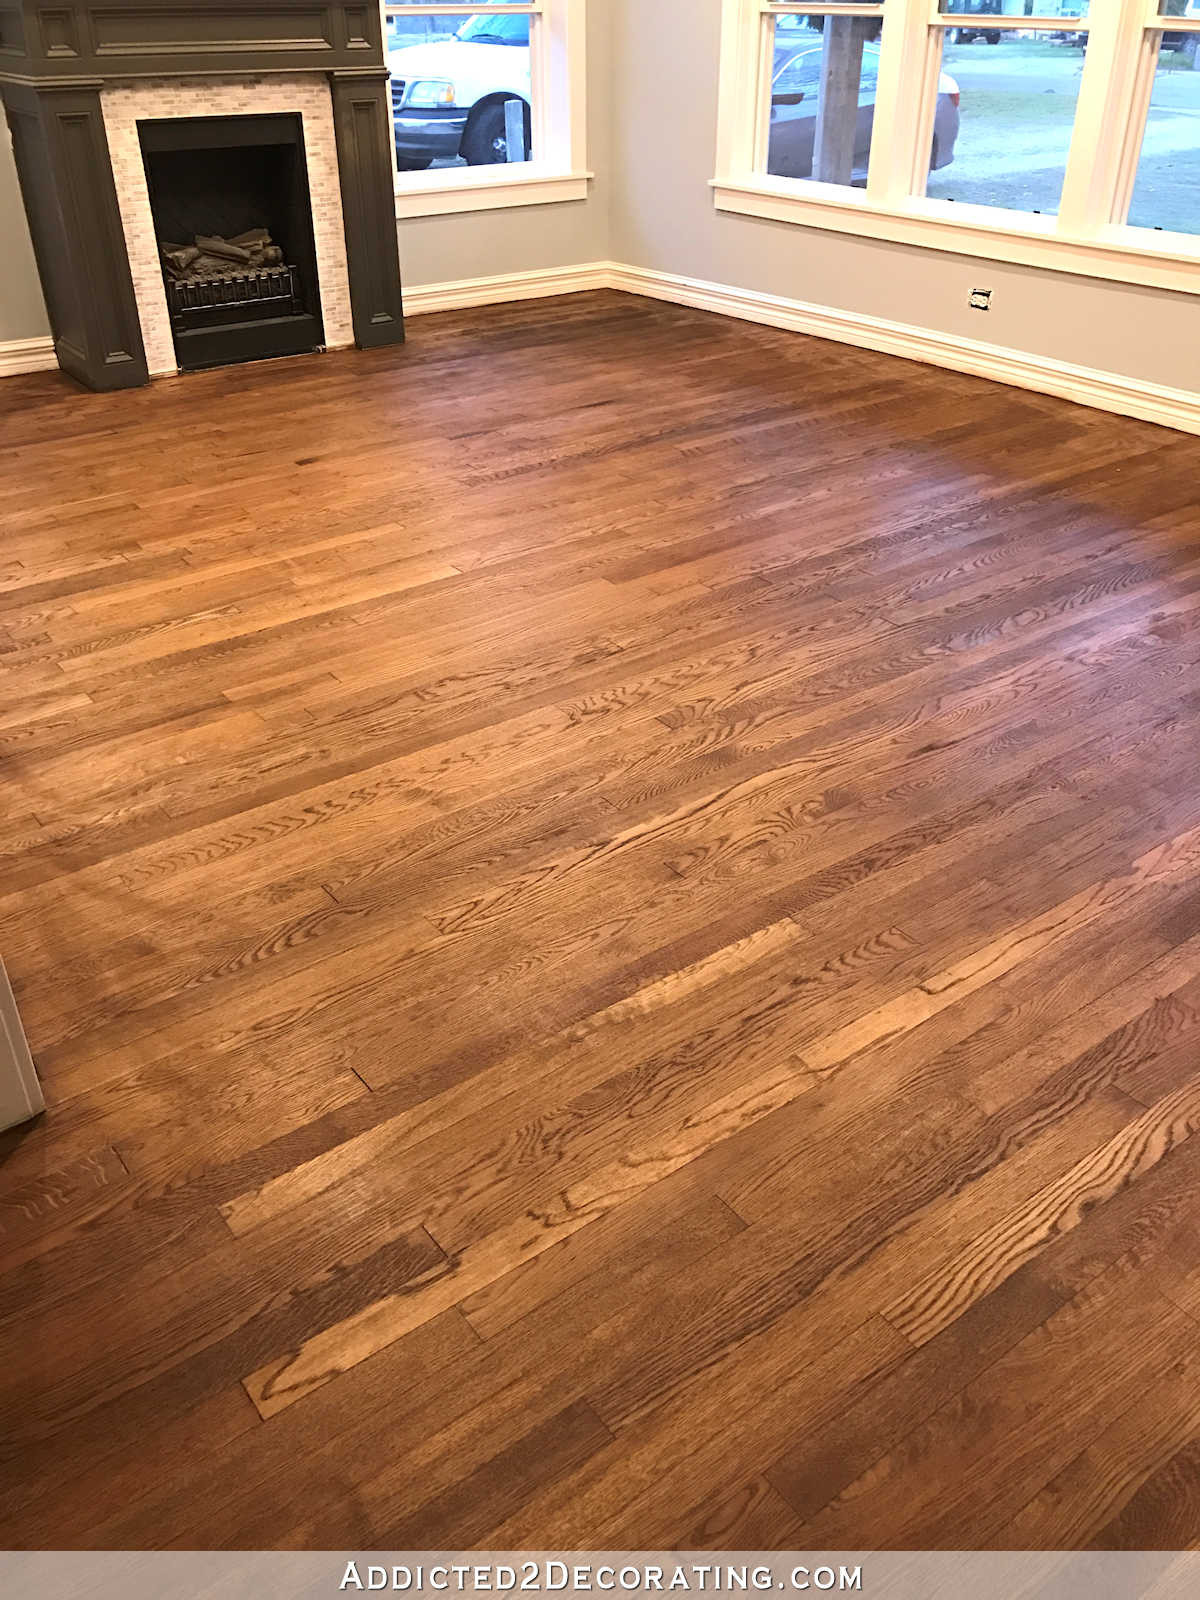 best hardwood floor stain color of adventures in staining my red oak hardwood floors products process pertaining to staining red oak hardwood floors 8a living room and entryway